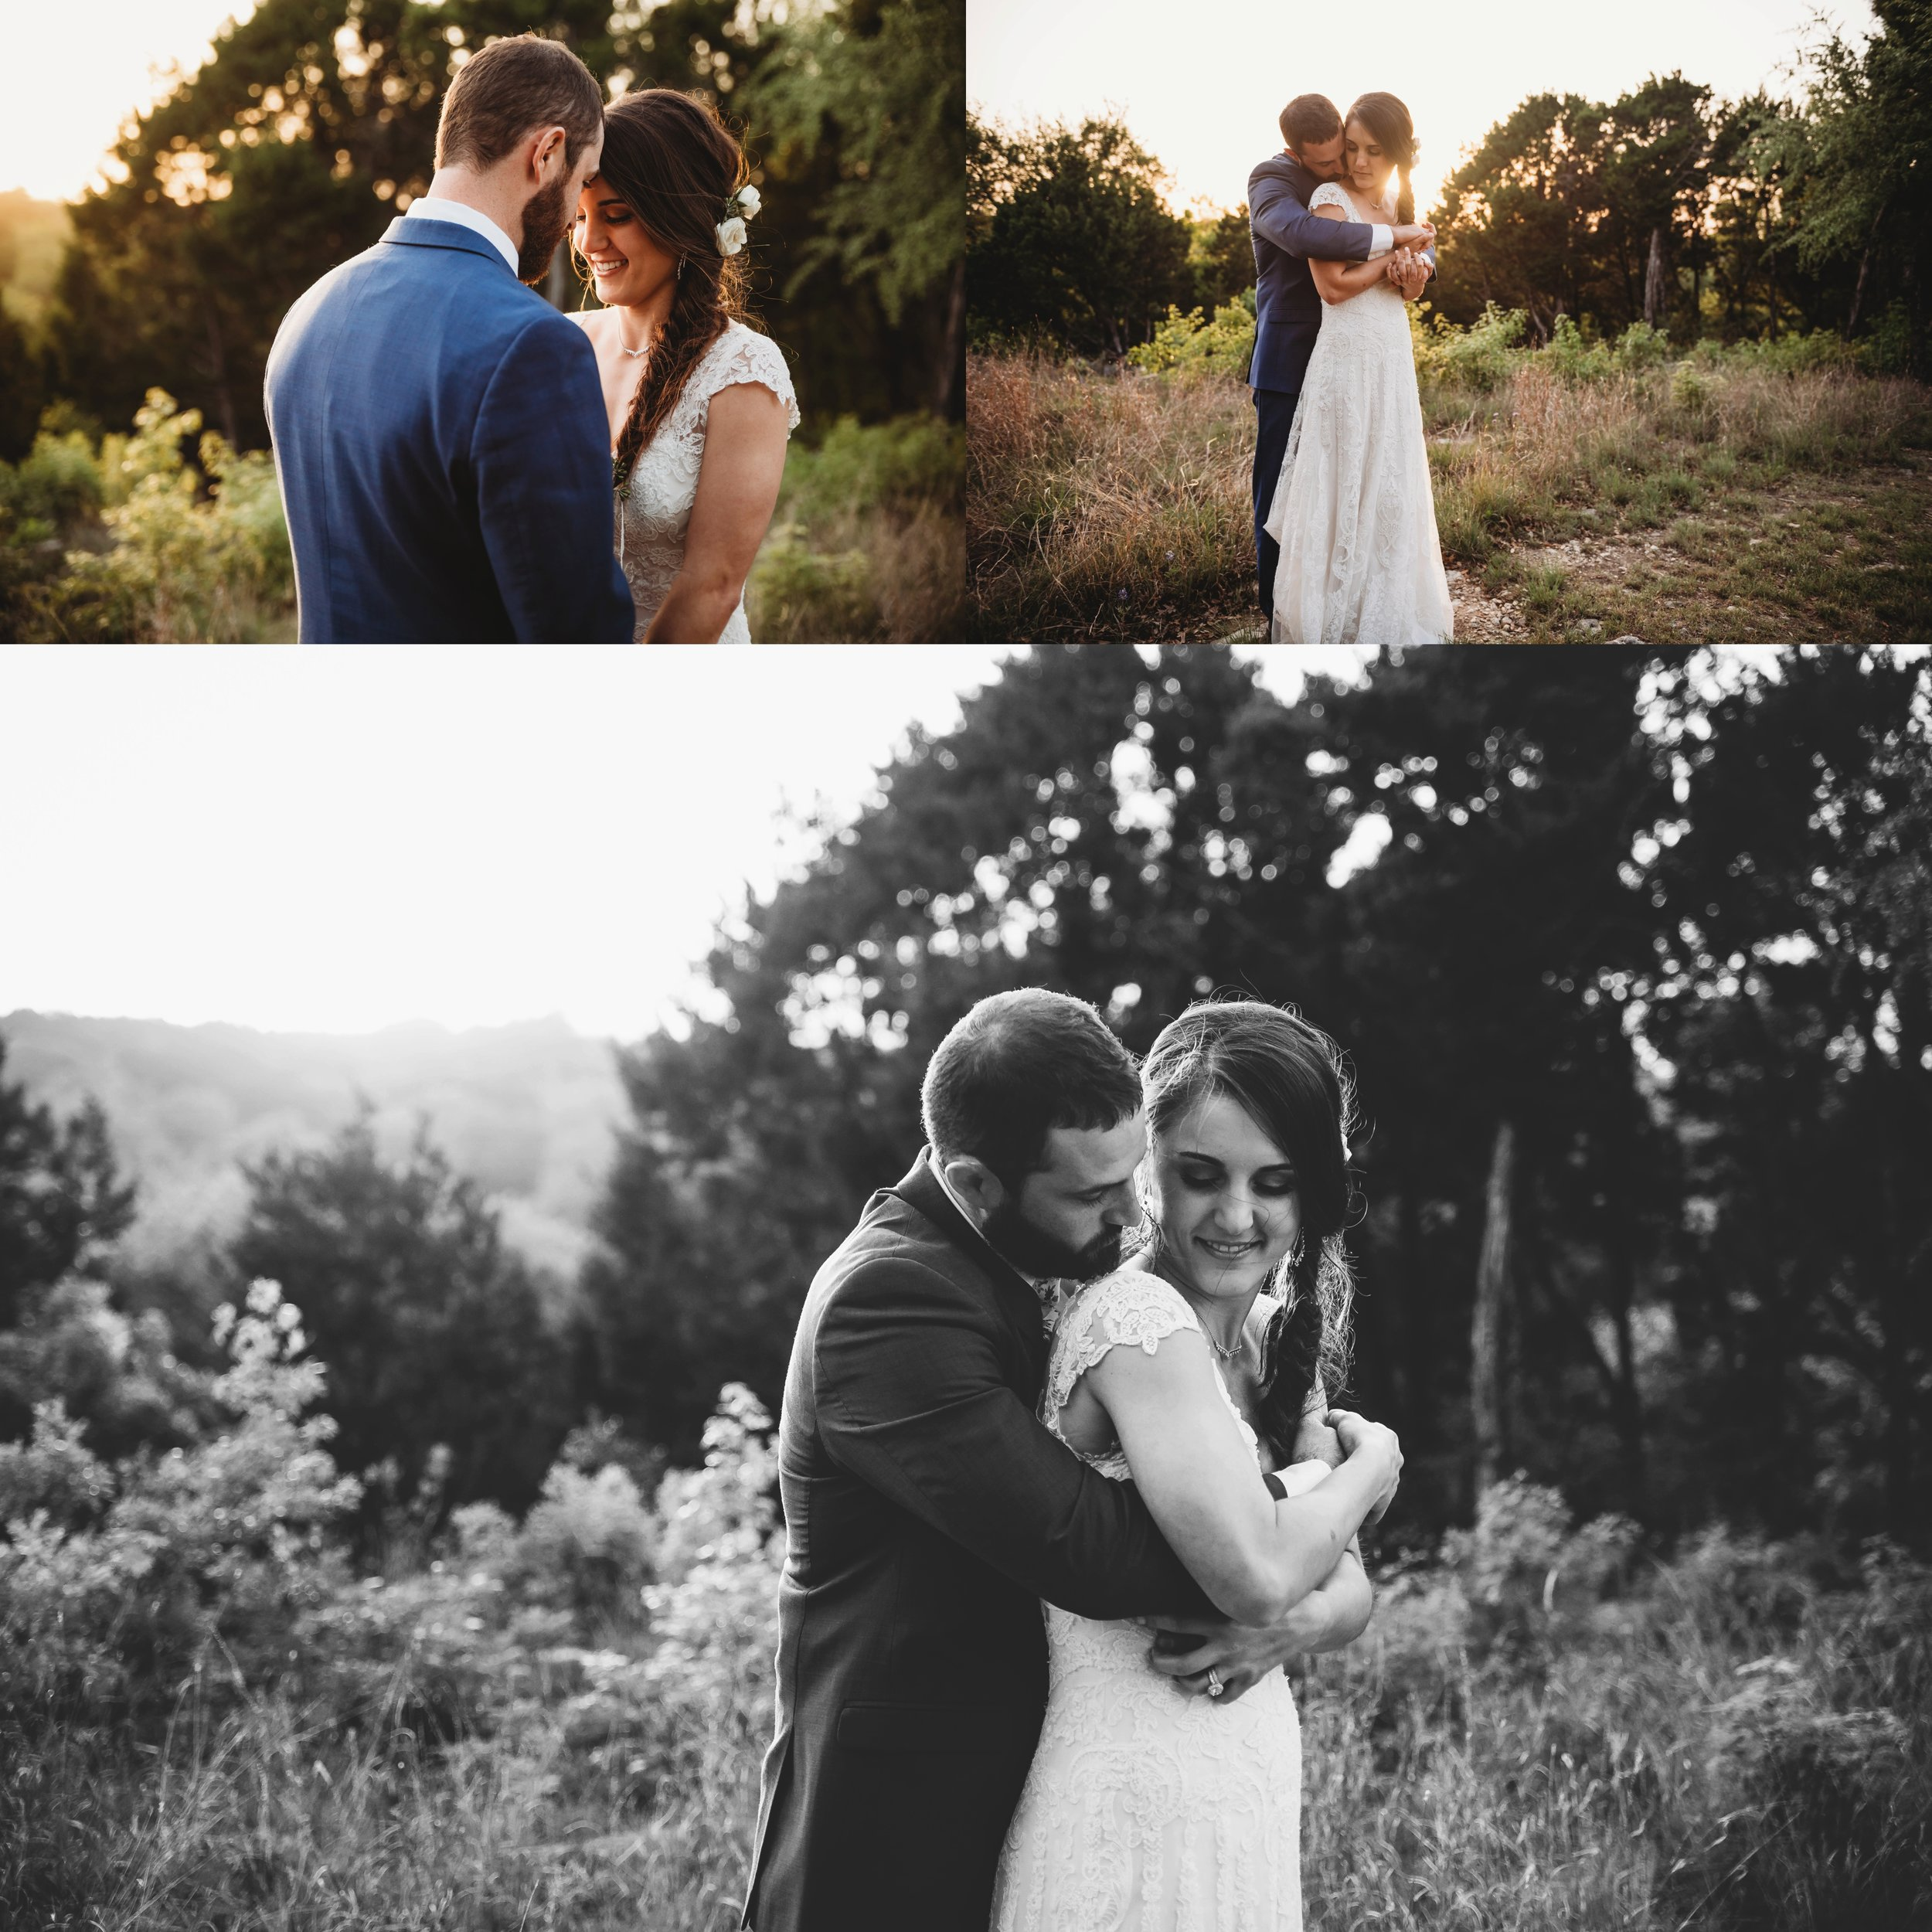 The-White-Fiore-Five-Oaks-Farm-Fort-Worth-Wedding-Planner-Bride-And-Groom-Portraits_012.jpg